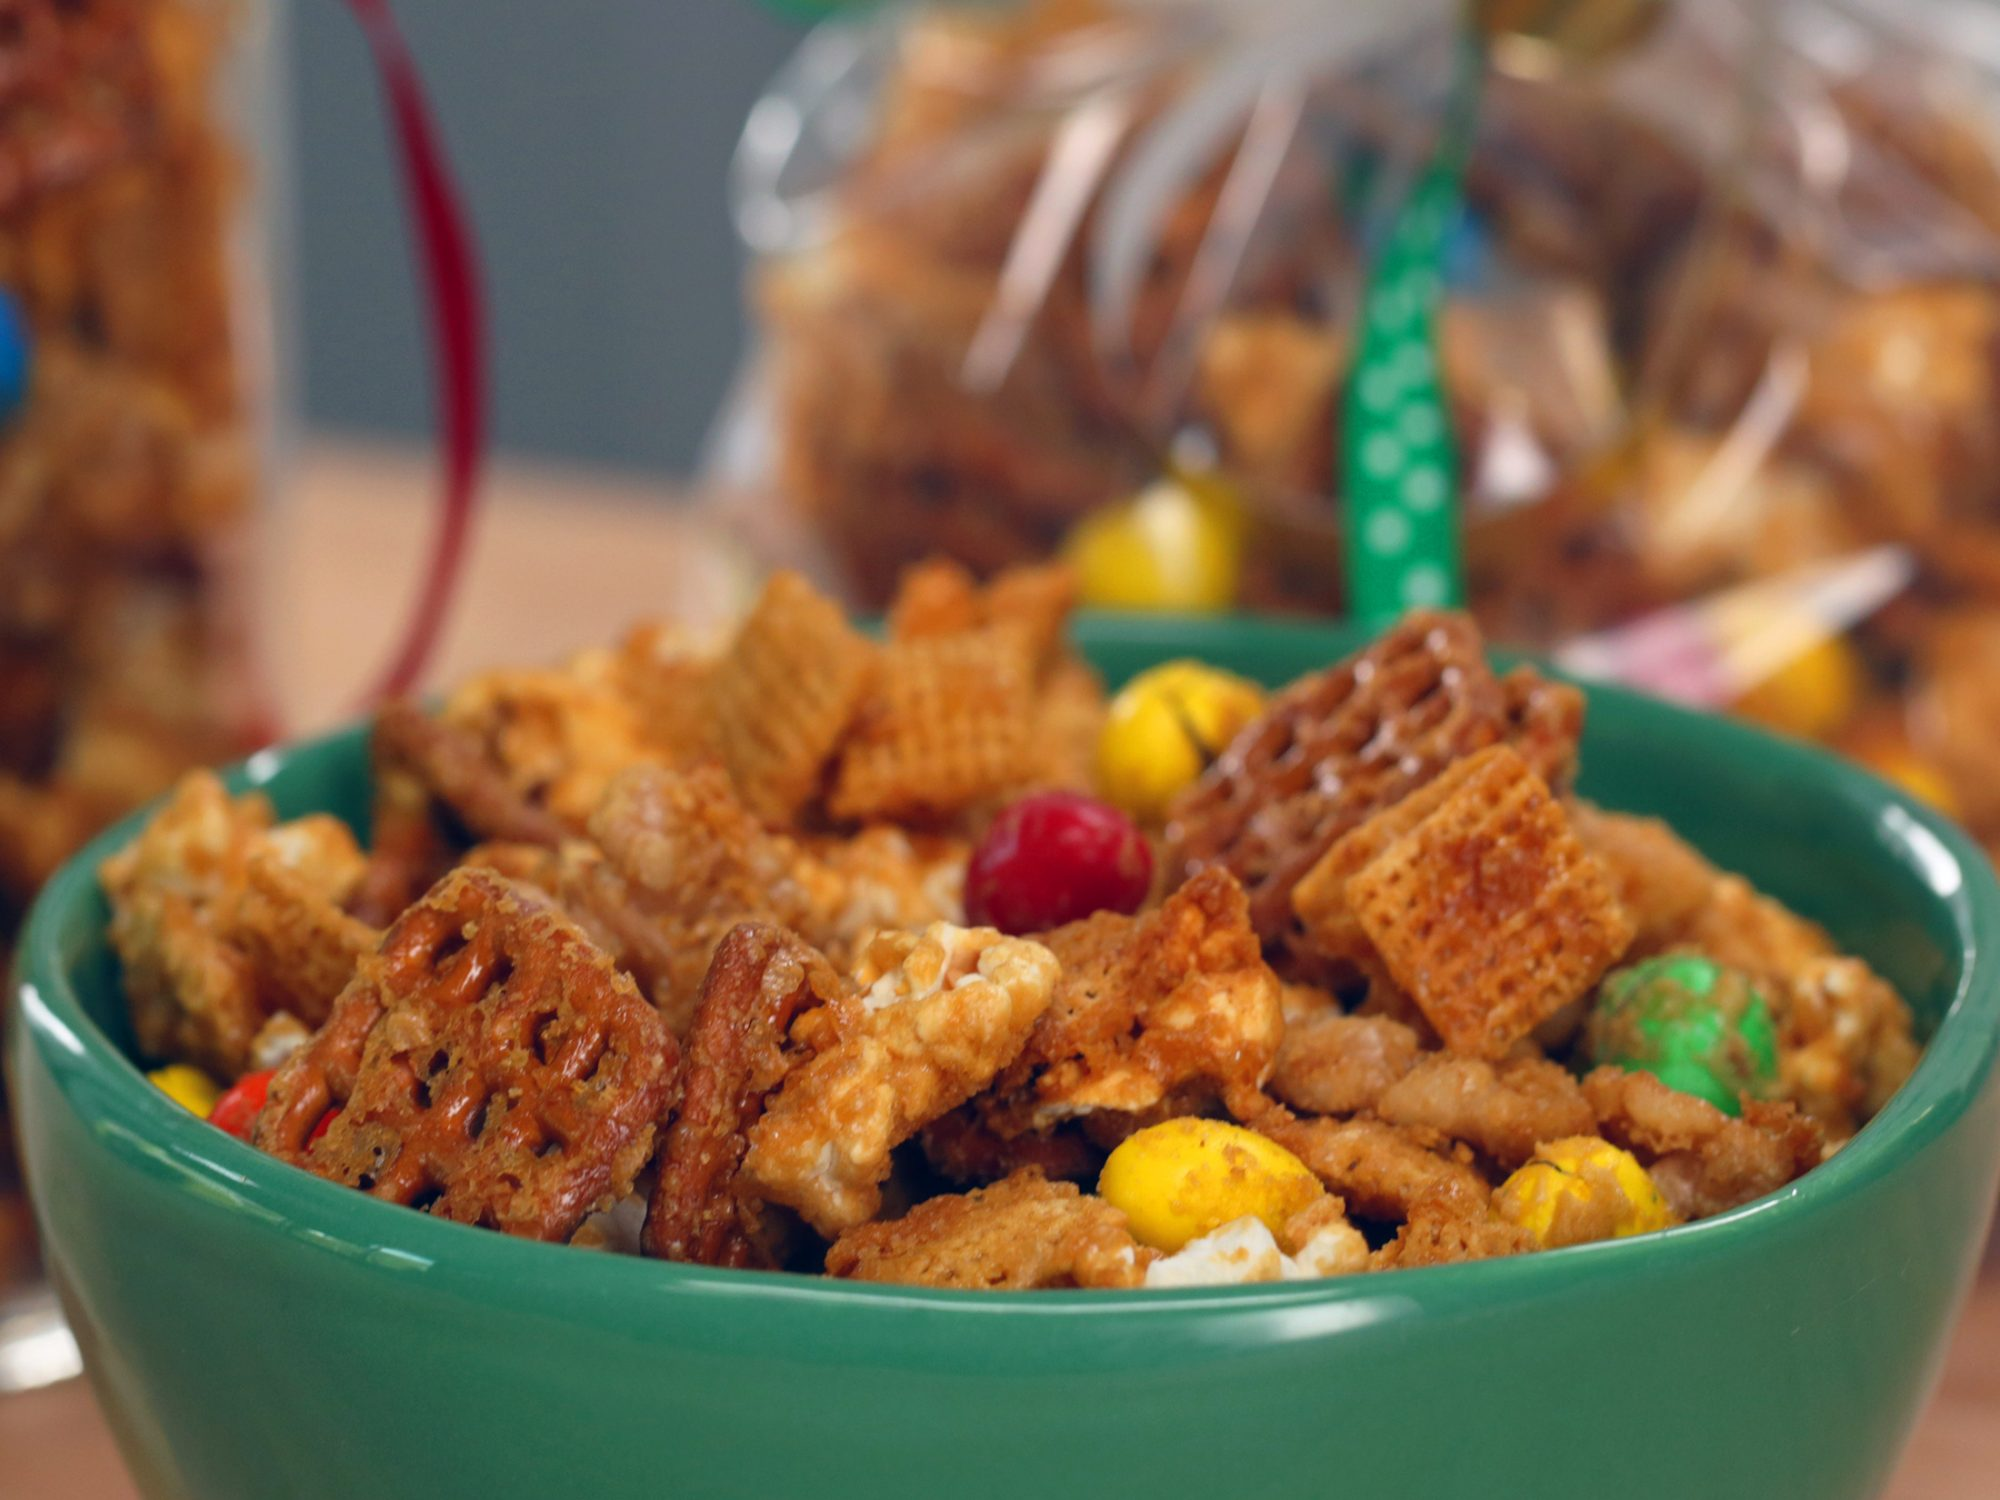 Caramel-Walnut Snack Mix image